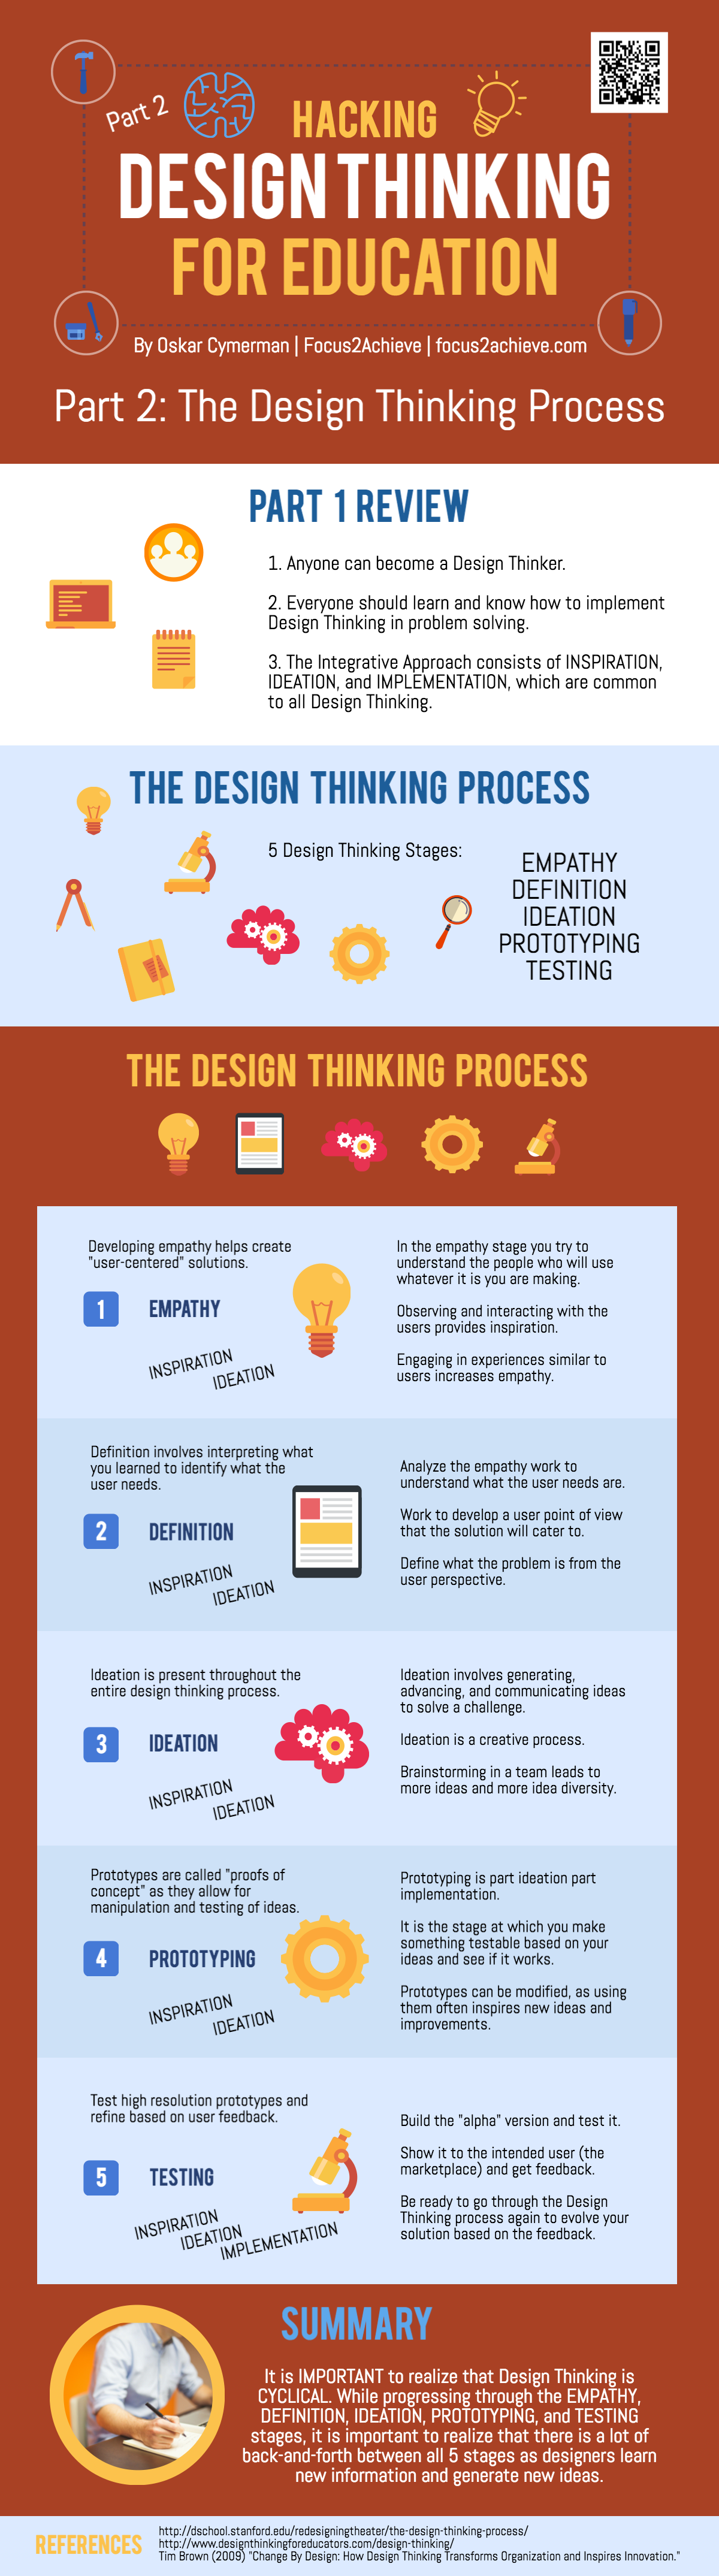 The Design Thinking Process Infographic